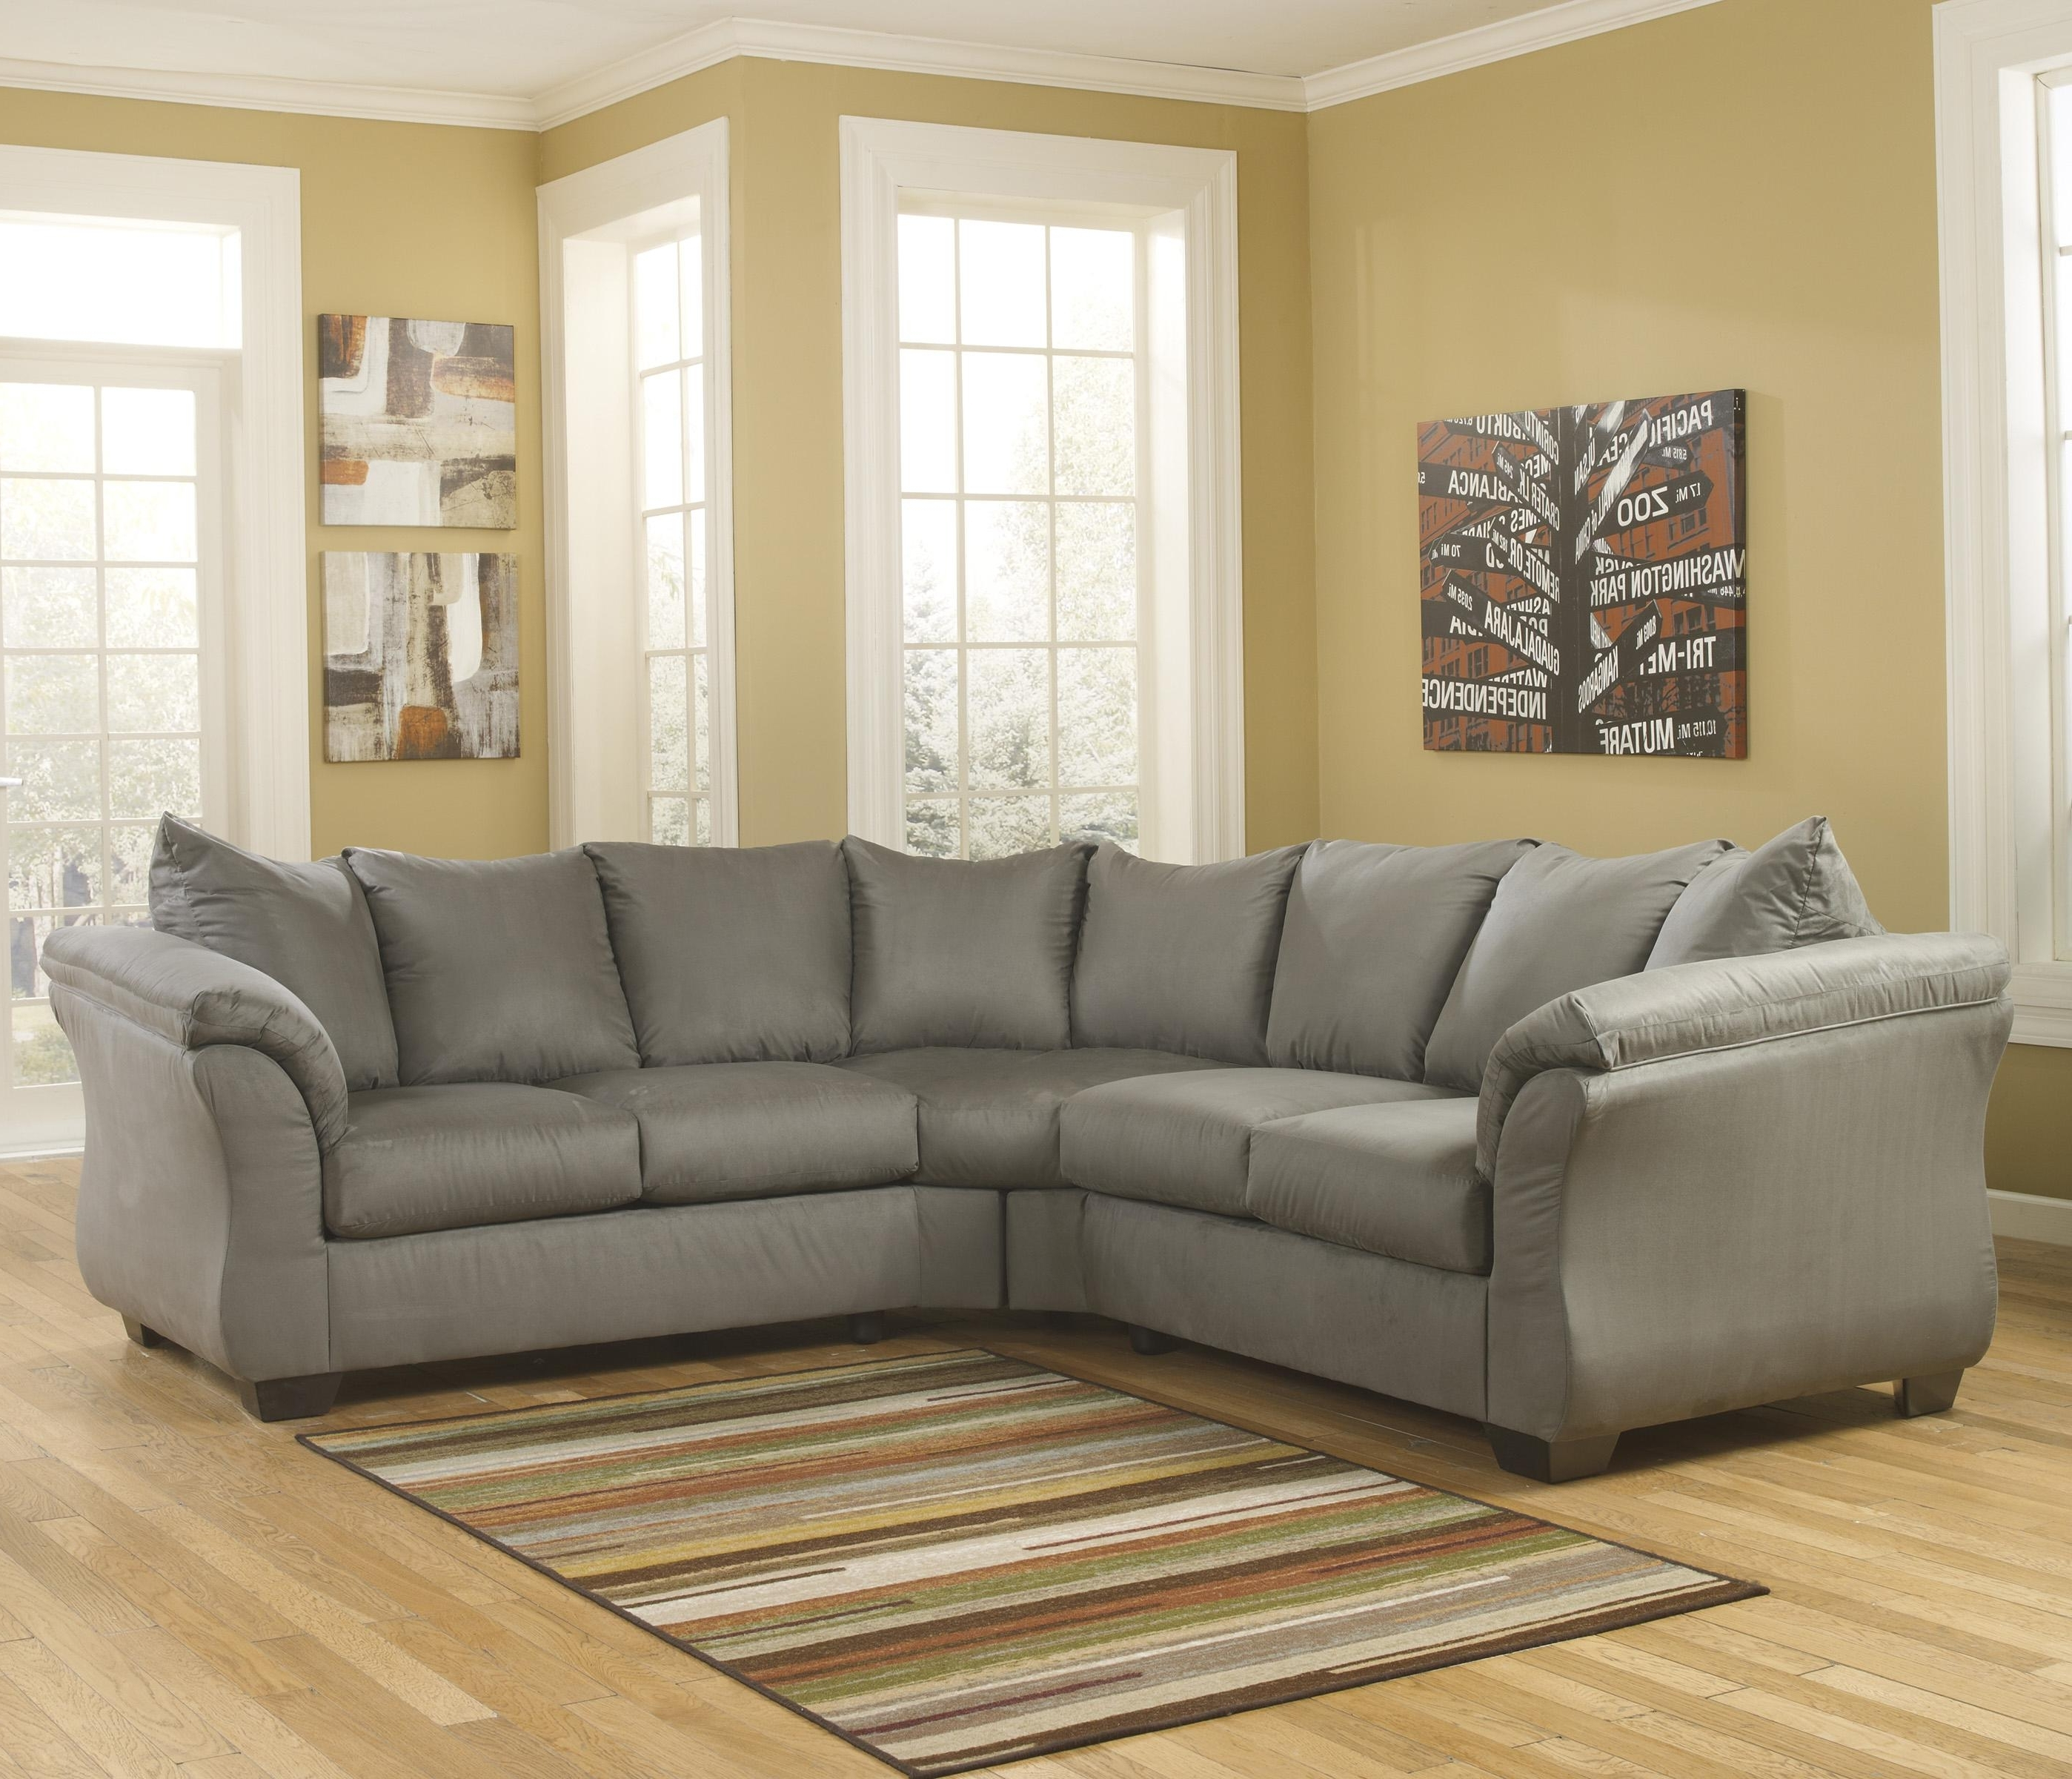 Popular Darcy – Cobblestone Sectional Sofasignature Designashley Intended For Eau Claire Wi Sectional Sofas (View 3 of 15)